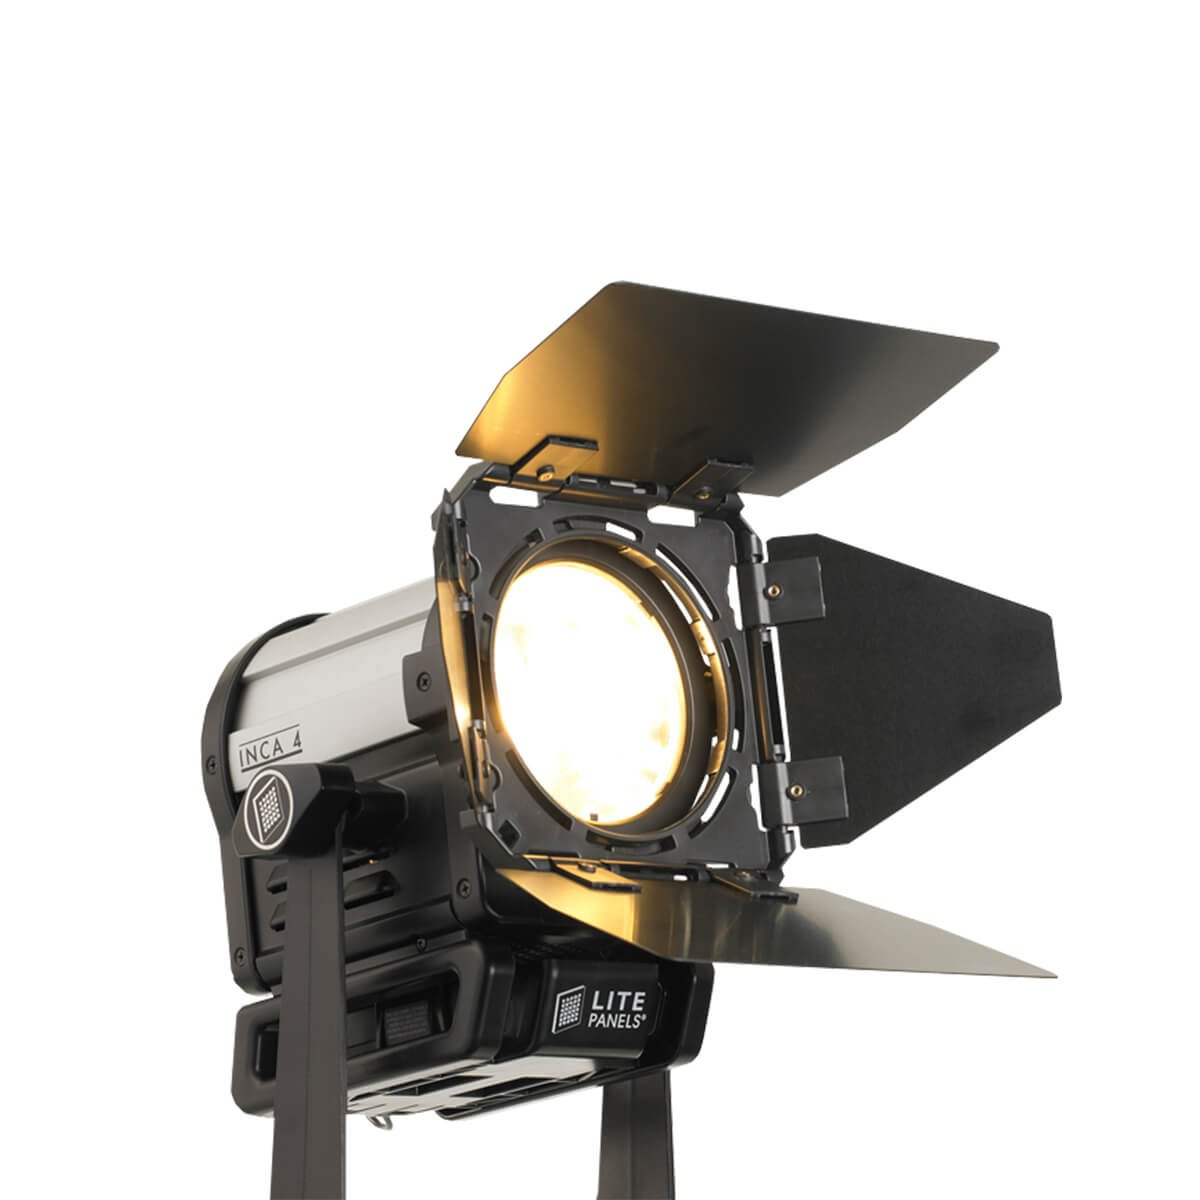 Litepanels Inca 4 Tungsten Fresnel | Compact Tungsten Balanced DMX LED Panel 906-4003 by Lite Panels